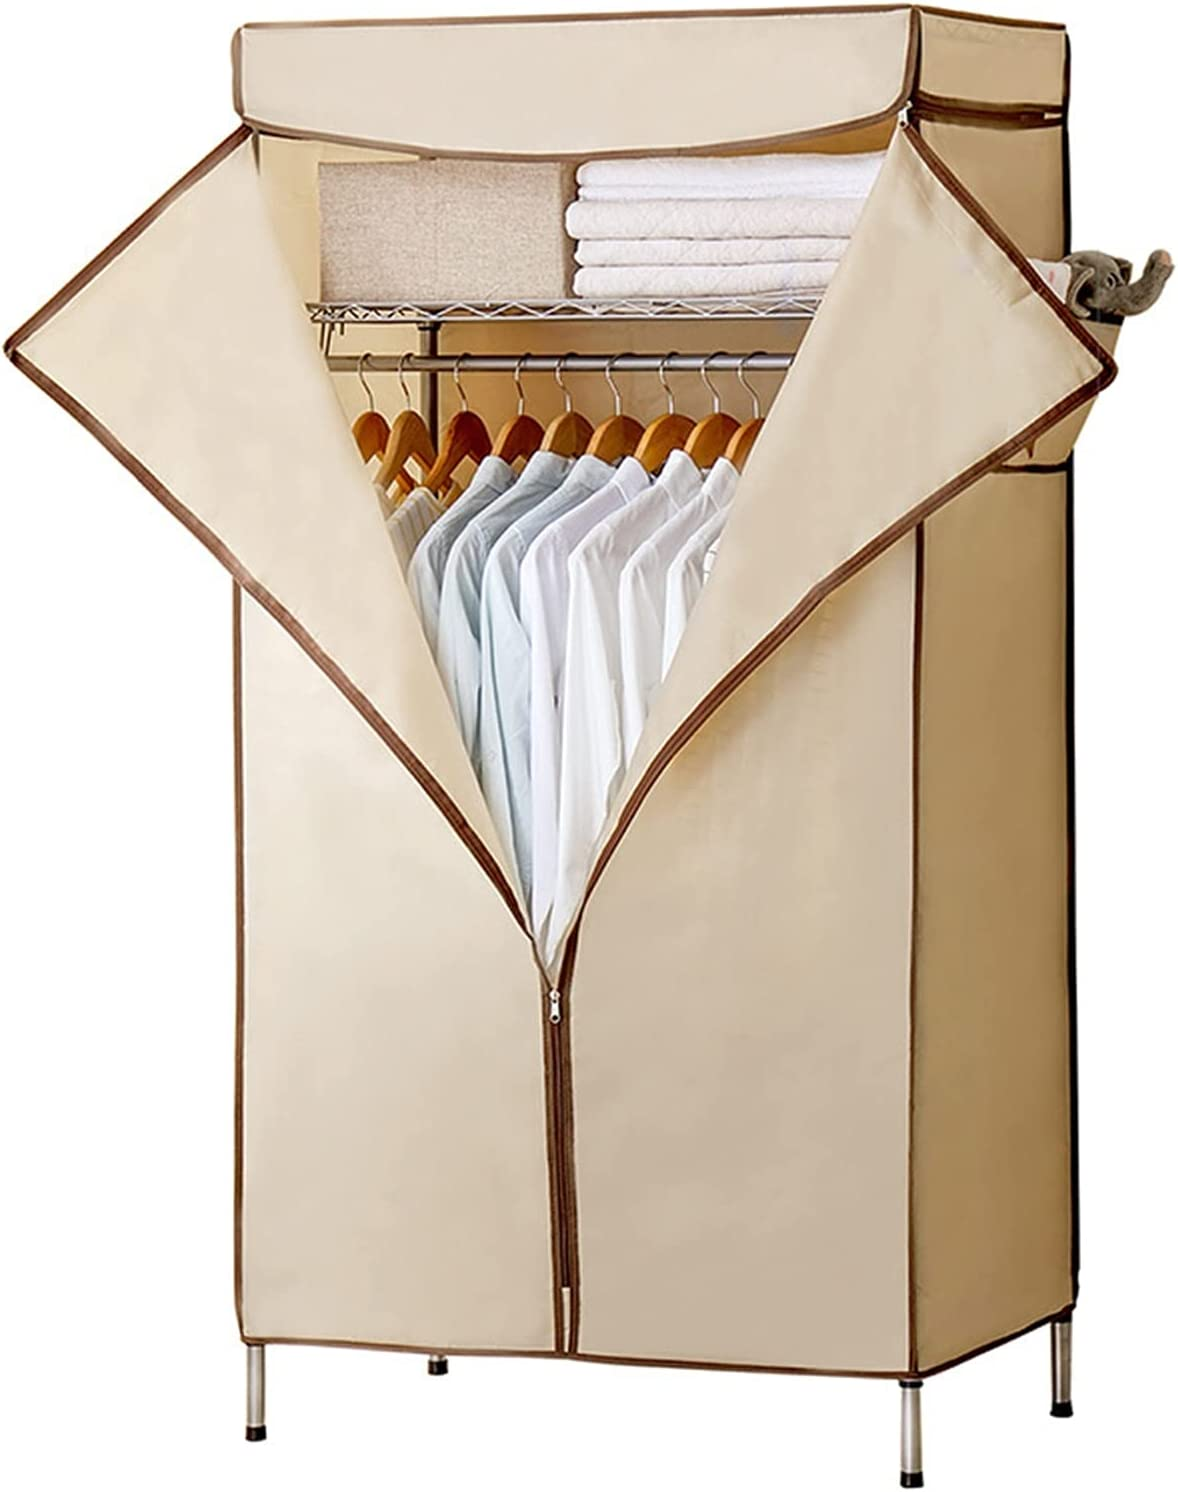 Wardrobe Portable Oxford for Ranking TOP2 Clothes Loa Hanging Popular standard Strong